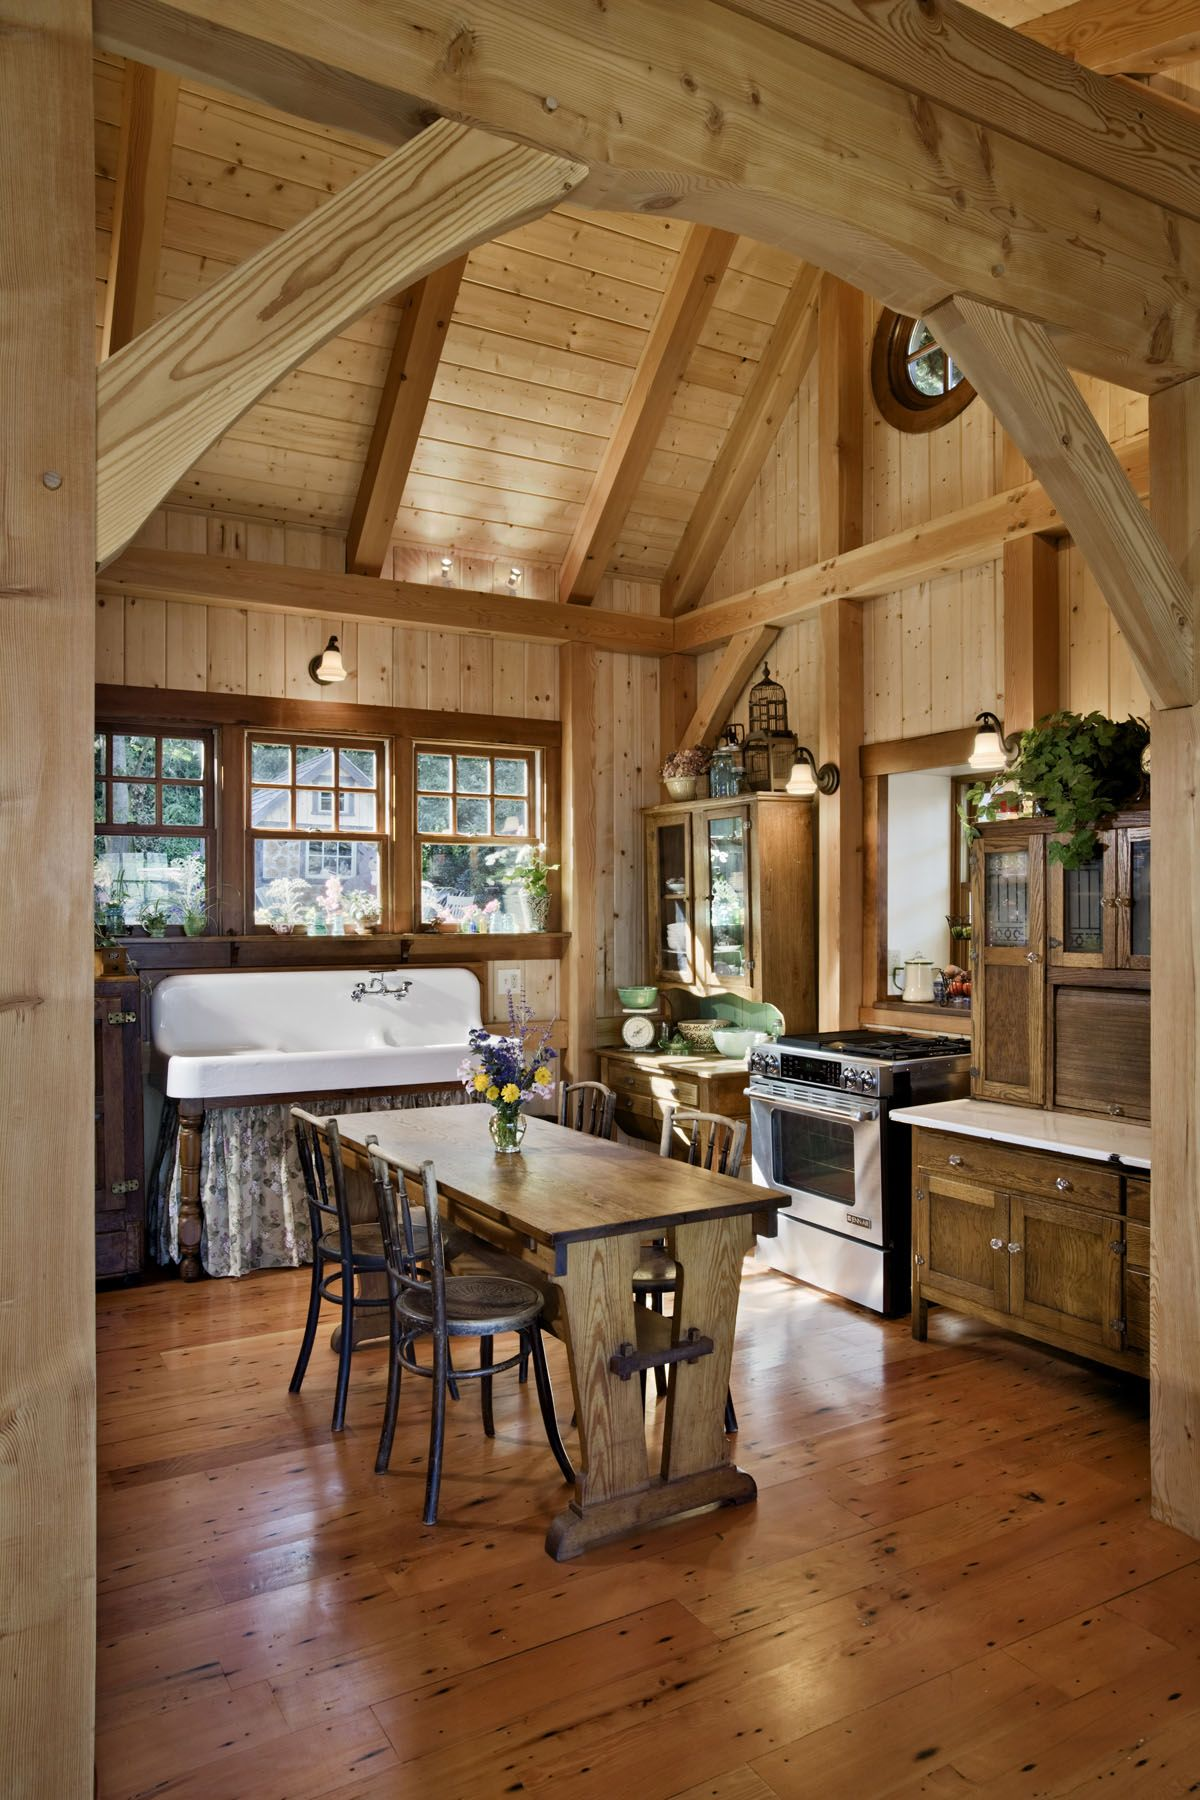 Build This Cozy Cabin Cozy Cabin Magazine Do It Yourself: Think Small: A Well-Designed Pacific Coast Cottage